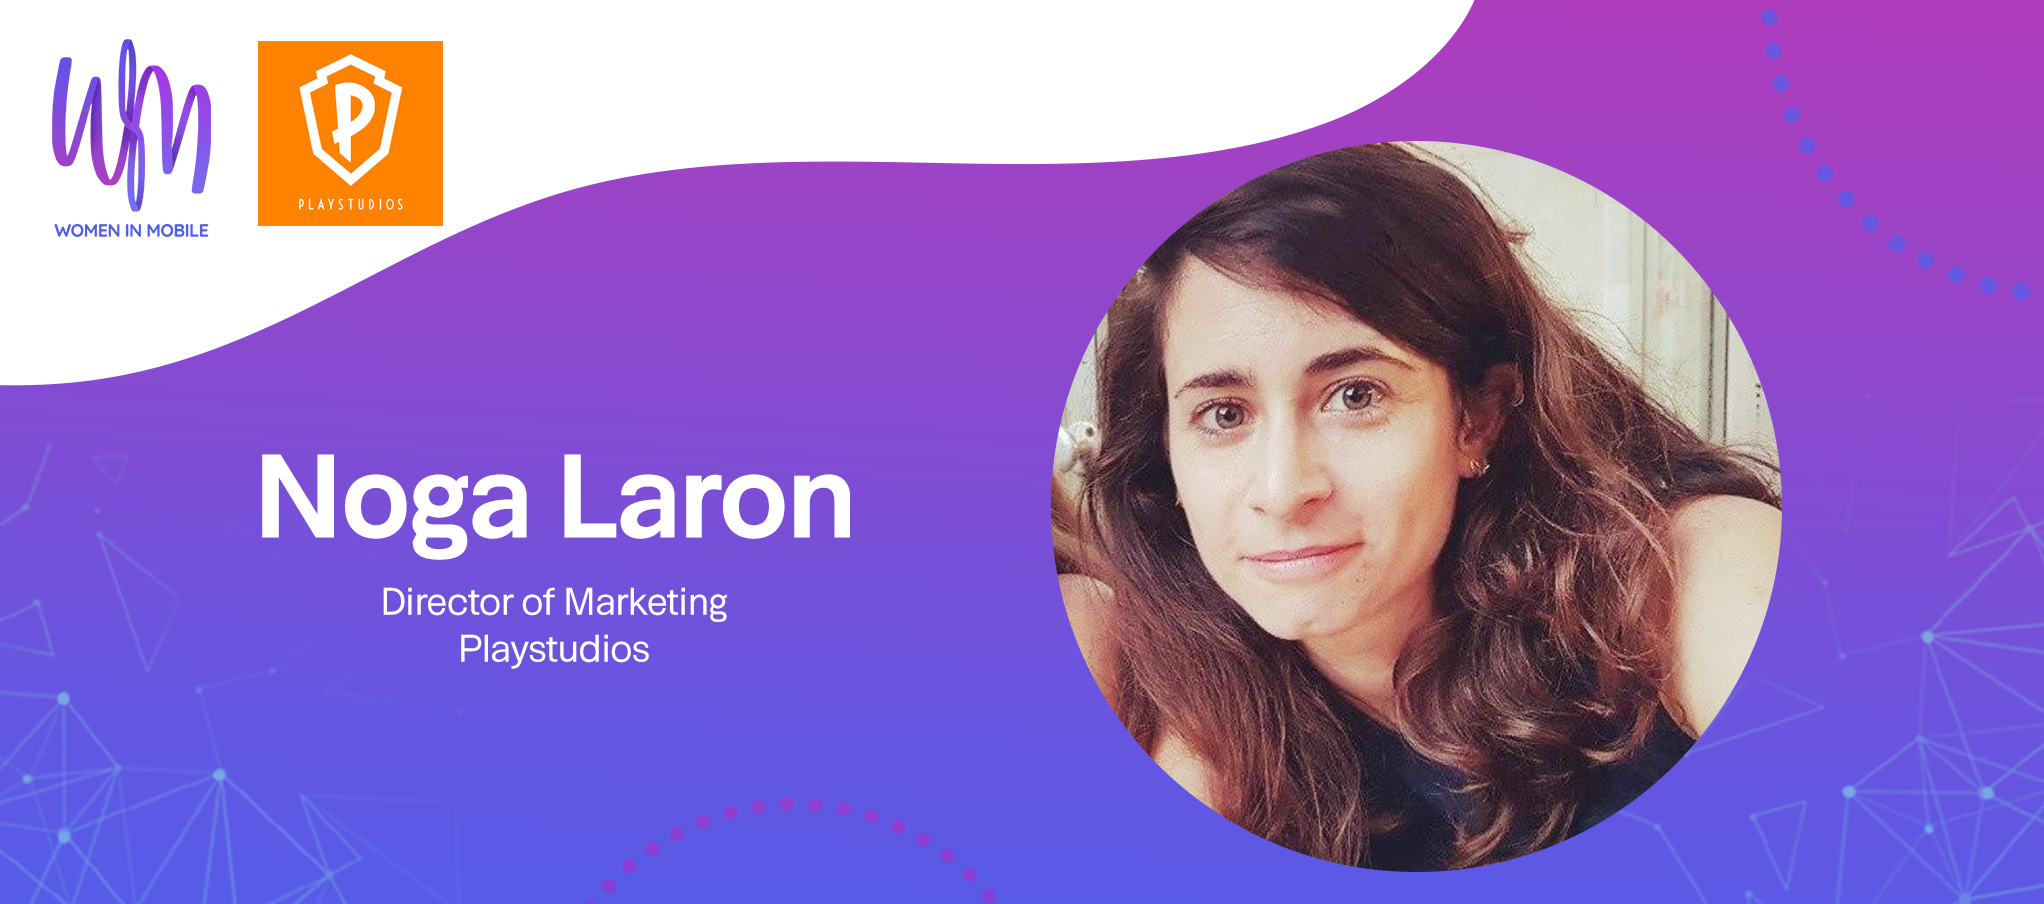 Noga Laron, Director of Marketing at Playstudios at Aarki's Women in Mobile series